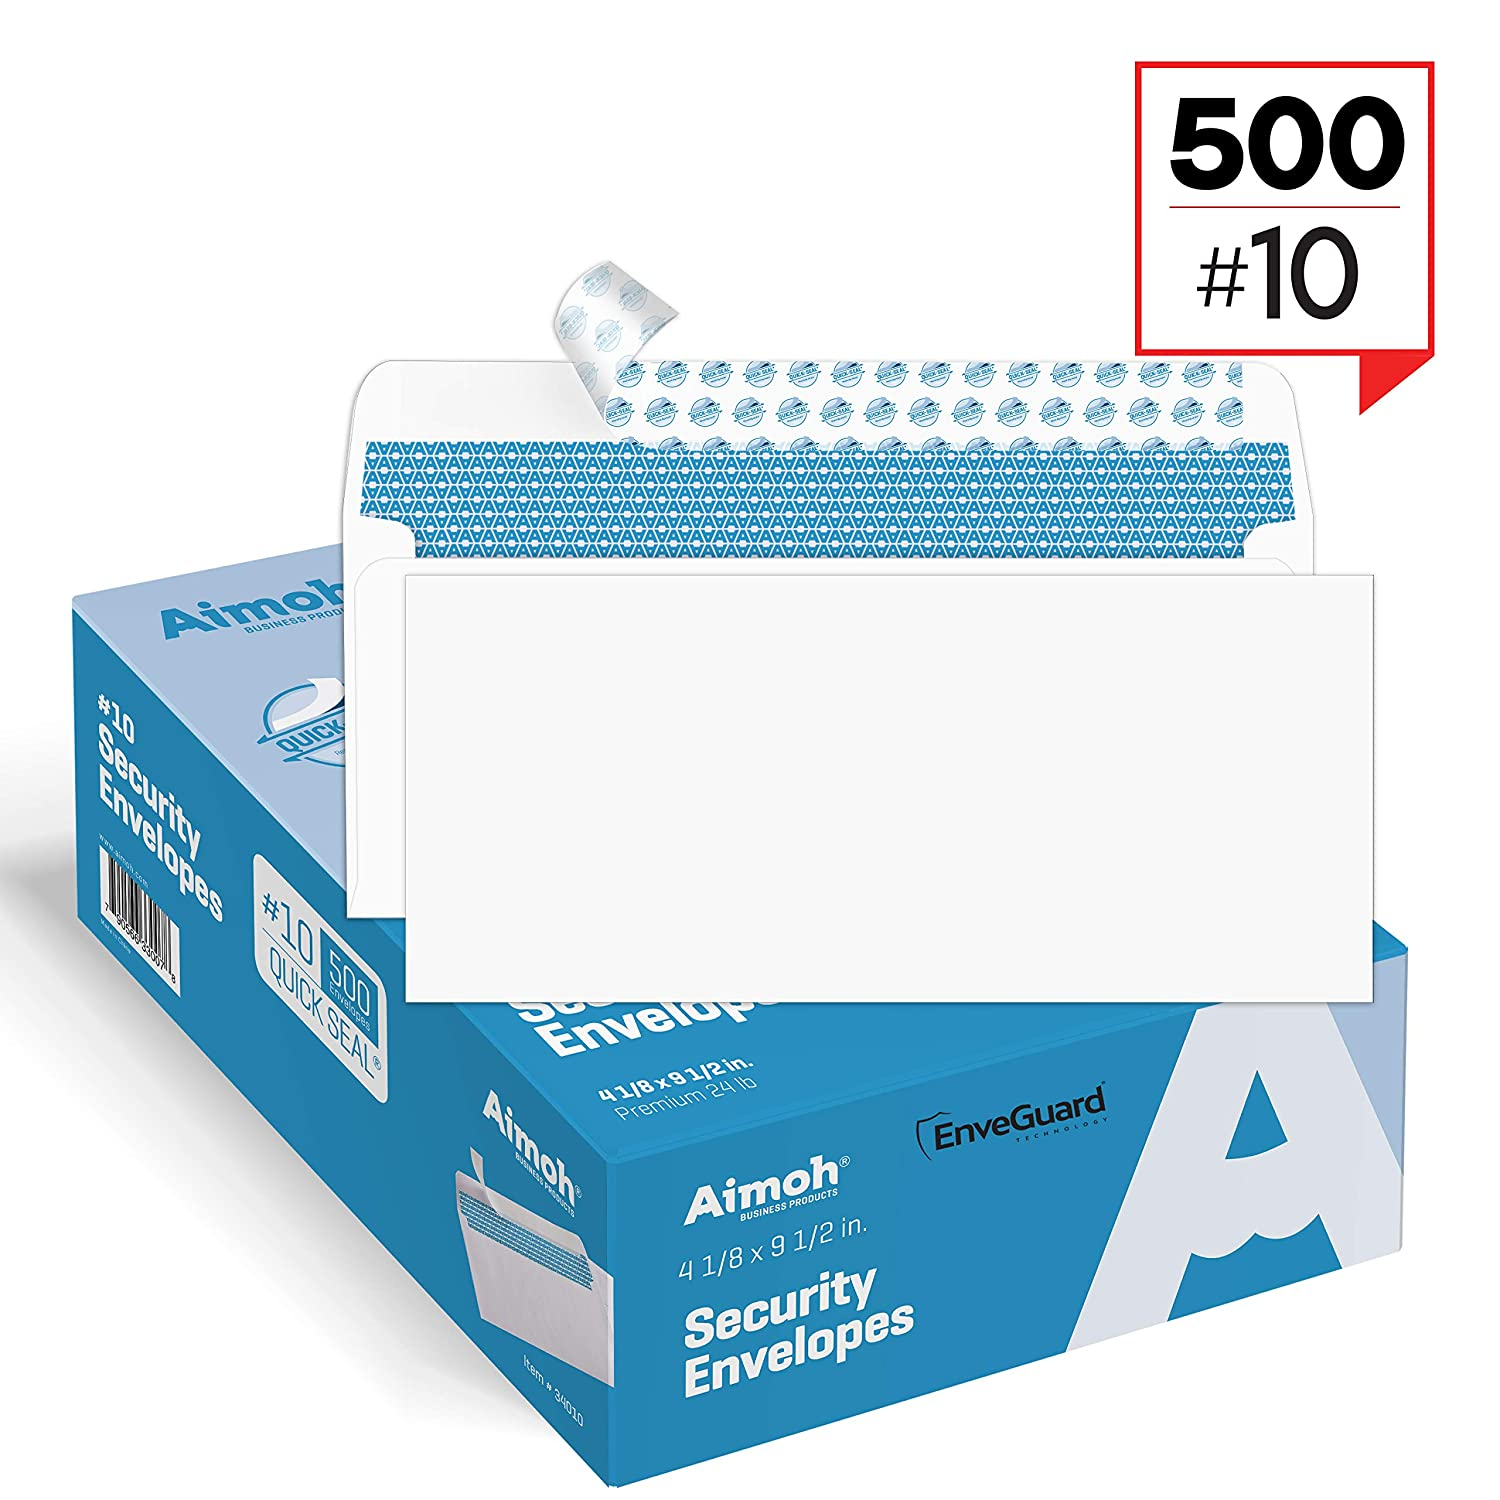 #10 Security Tinted Self-Seal Envelopes - No Window, Size 4-1/8 X 9-1/2 Inches - White - 24 LB - EnveGuard - 500 Count (34450) 81LBLu4uzyL